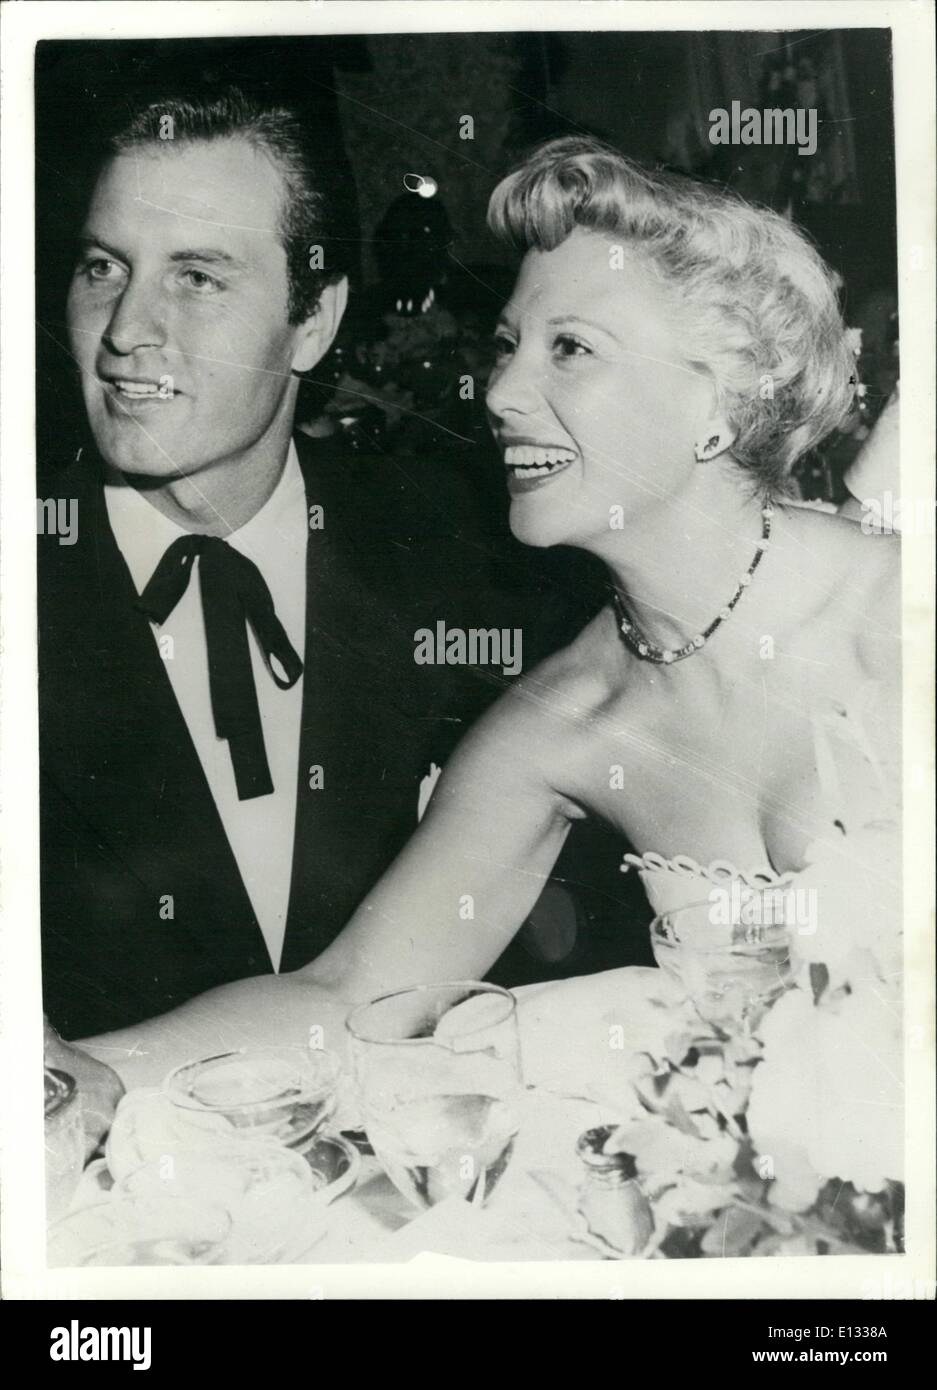 Feb. 26, 2012 - The are called ''Holly wood's happiest couple ' Dinah Shore and husband George Montgomery. claimed to be ''Hollywood''s happiest couple' and acting as if they were still honeymooners are Dinah shore and here comboy star husband George Montgomery - seen when they attended a party in Hollywood recently. - Stock Image